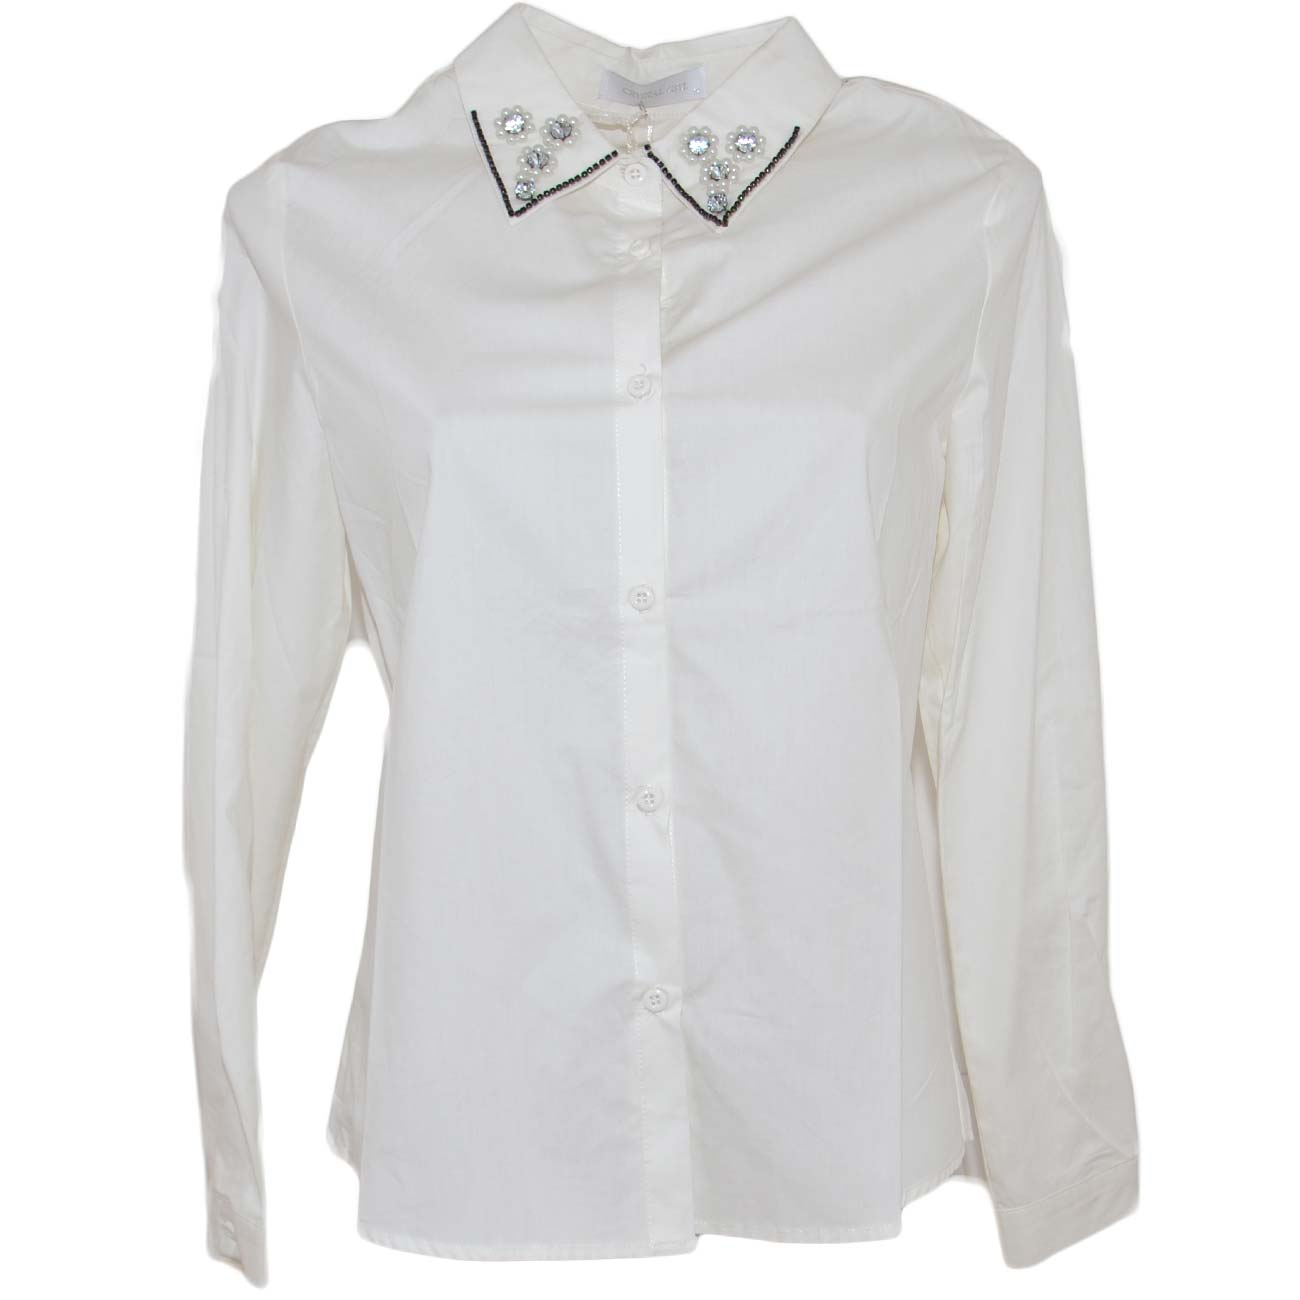 Camicia donna bianca in cotone classica con perline e strass su colletto abbottonatura basic maschile moda.